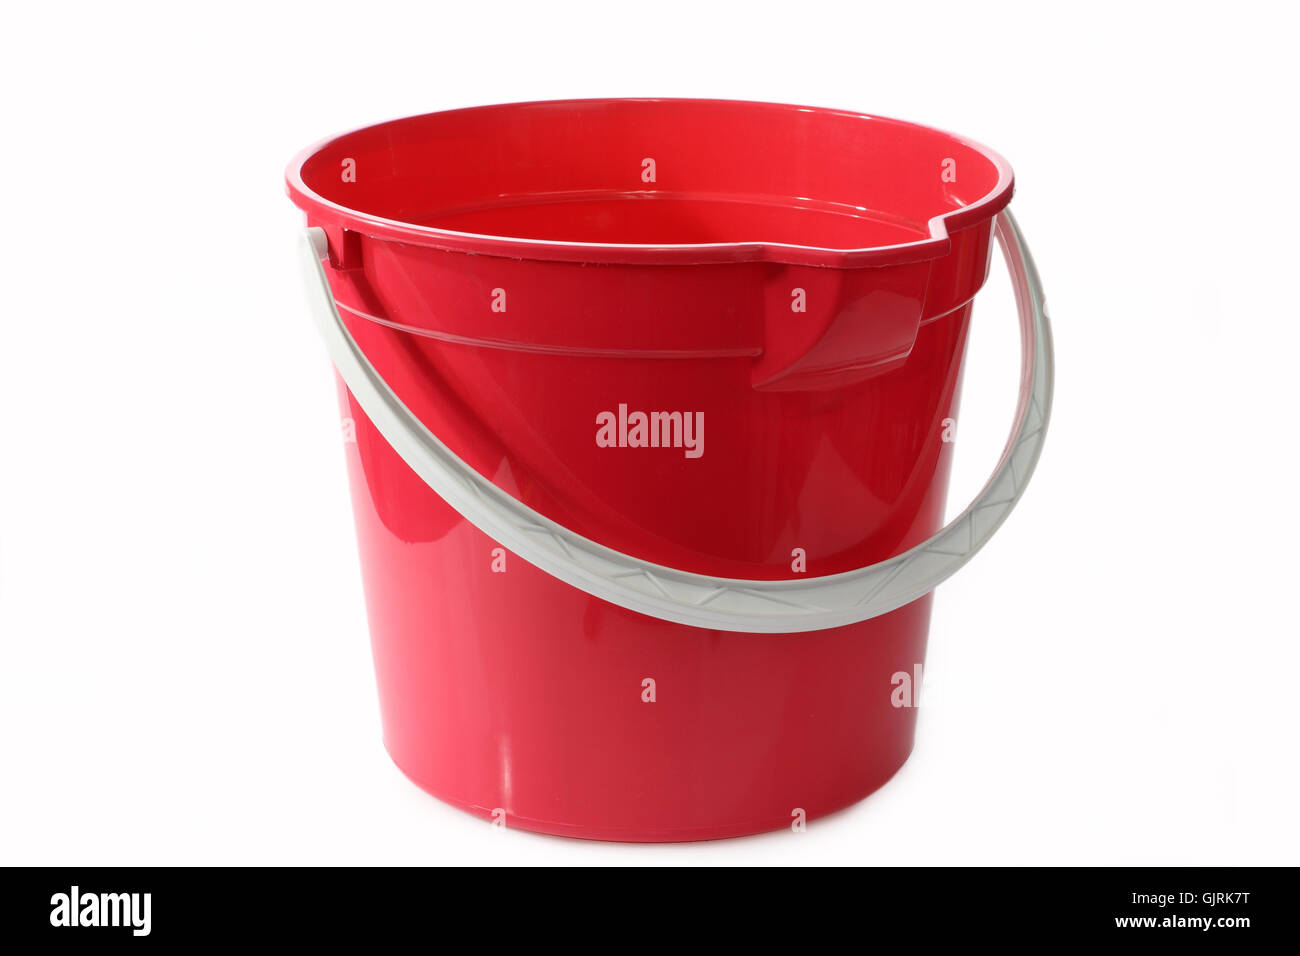 bucket plastic synthetic material - Stock Image